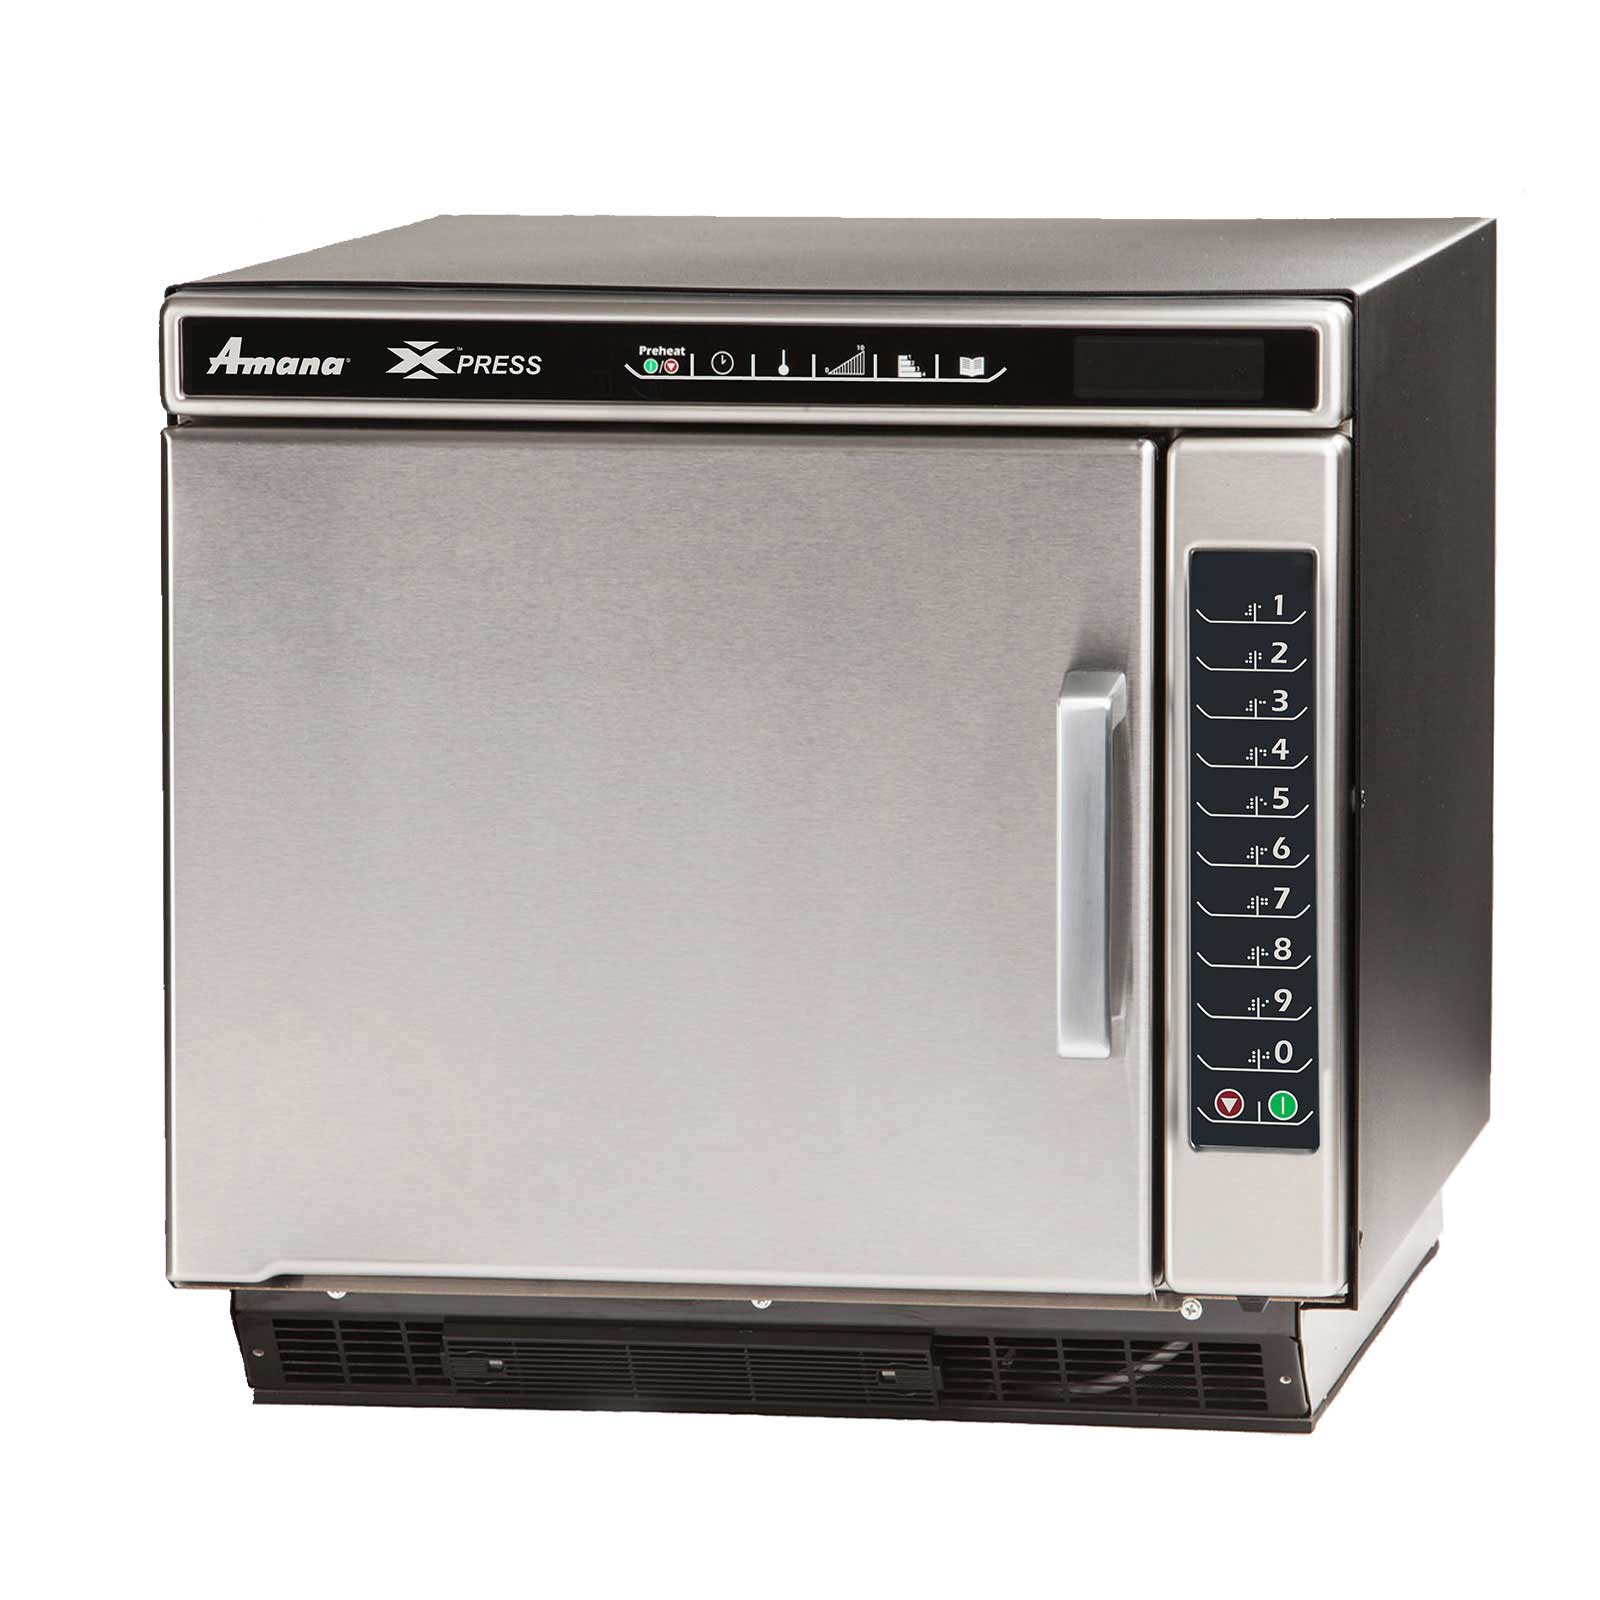 Amana Ace14n Commercial Convection Xpress Combination Oven